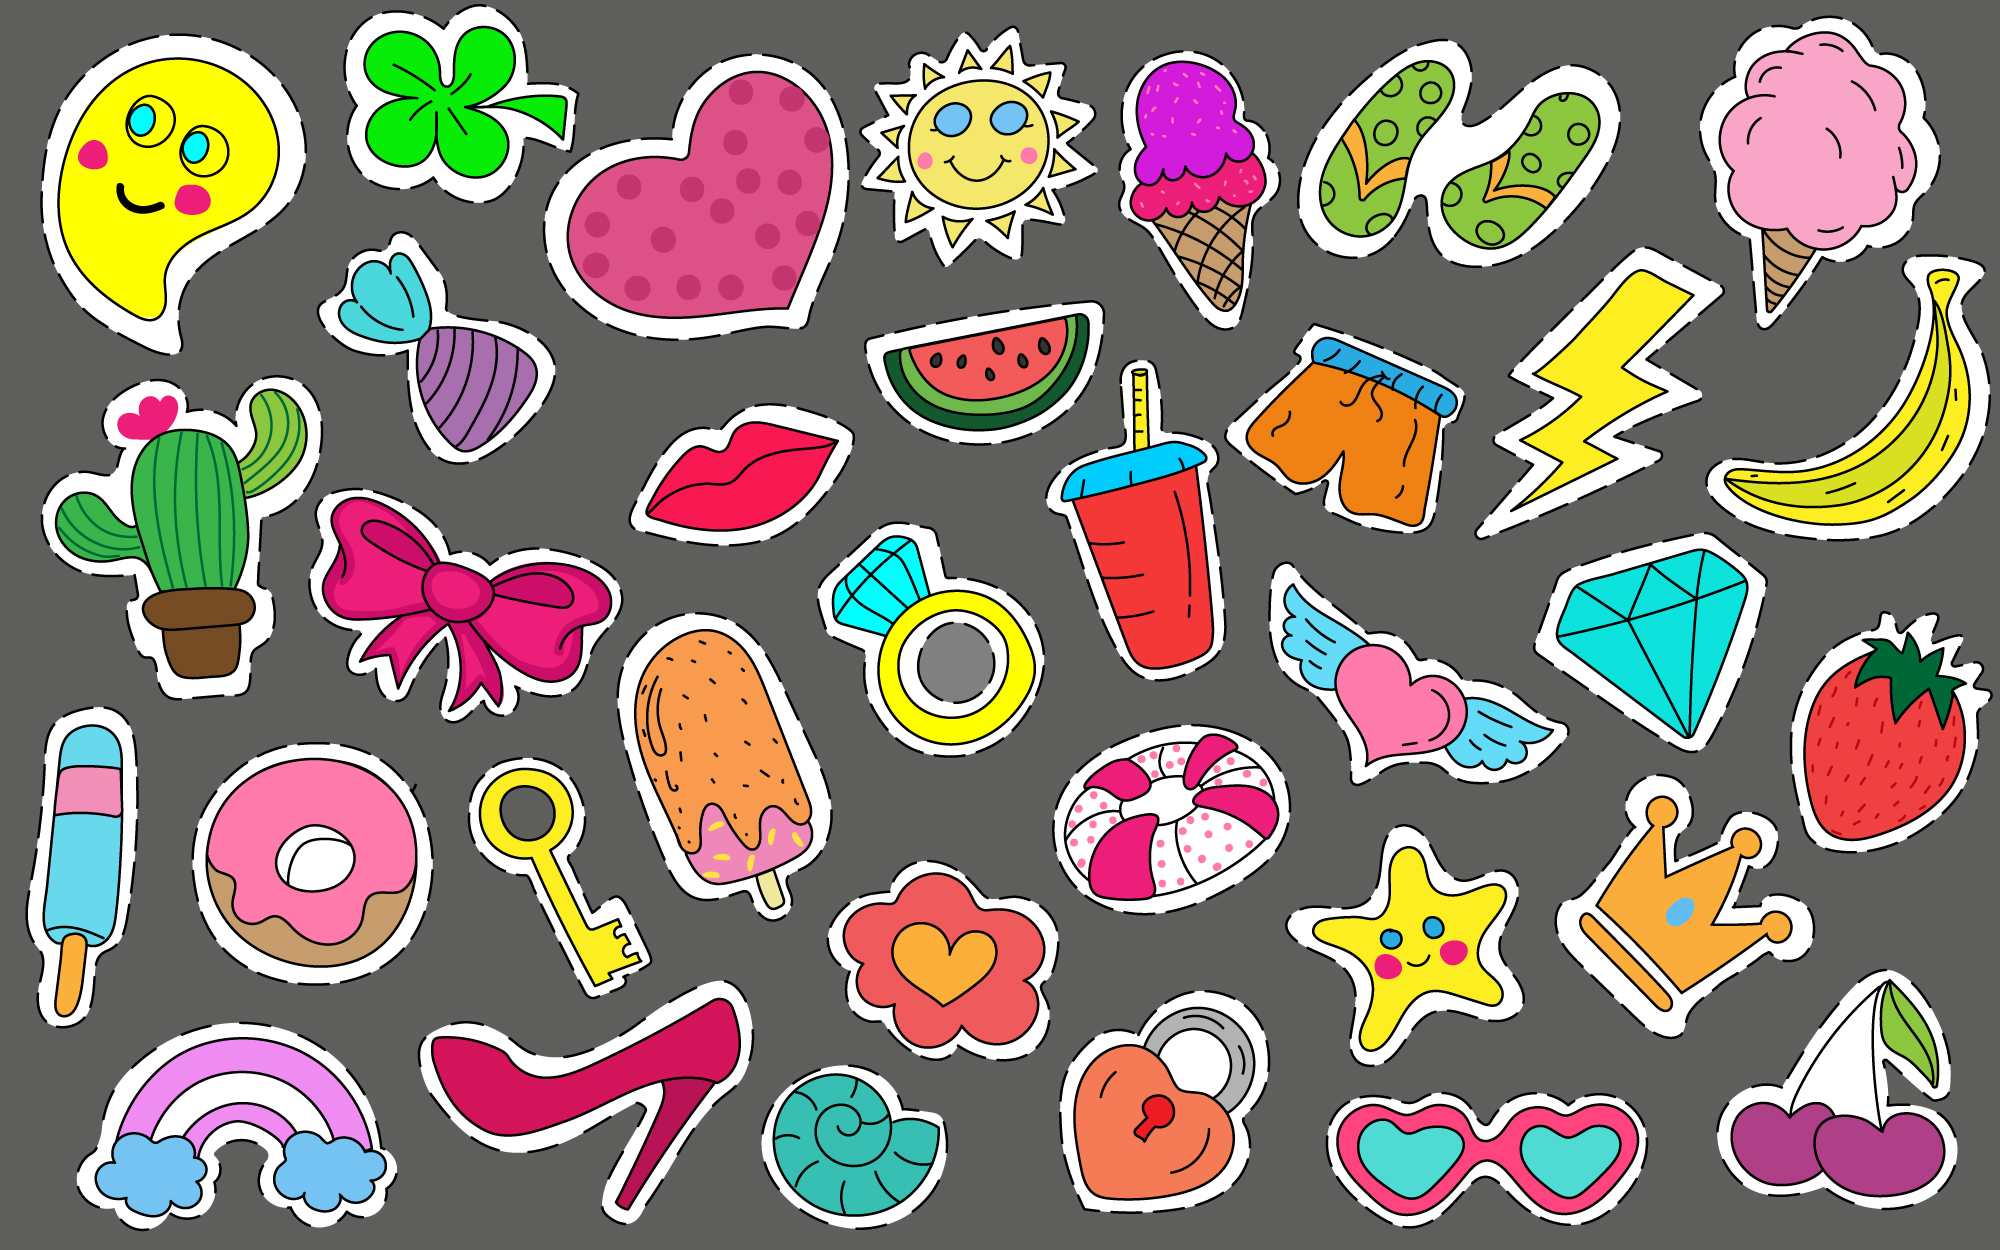 Cute Stickers and Patches Free Download